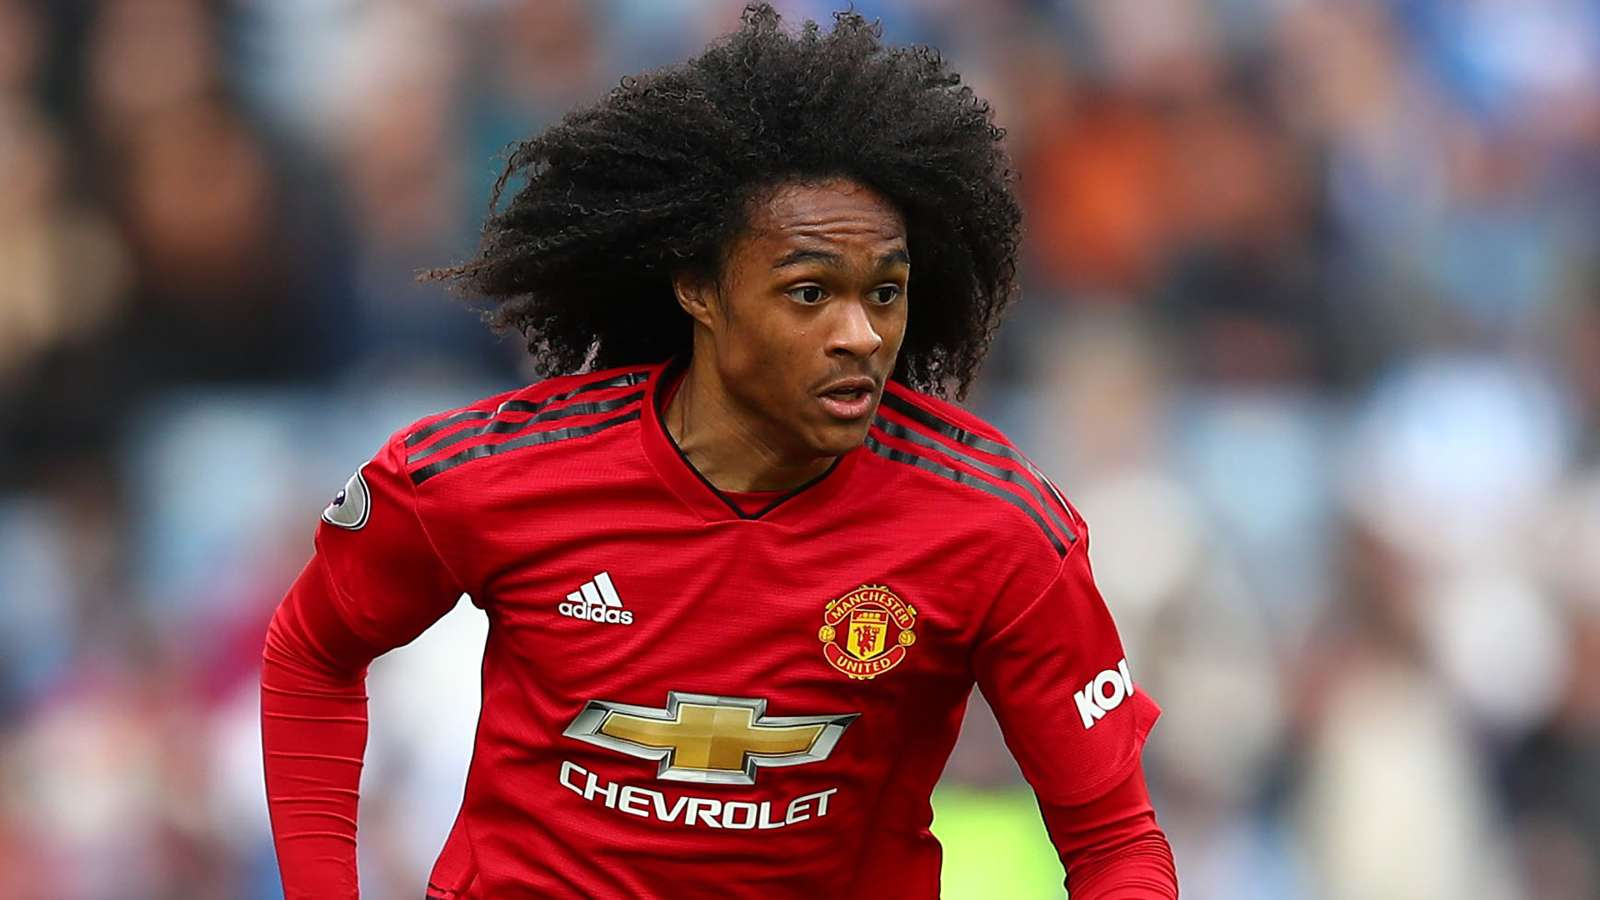 MANCHESTER UNITED: SOME FANS WANT TAHITH CHONG TO BE LOANED OUT - Bóng Đá